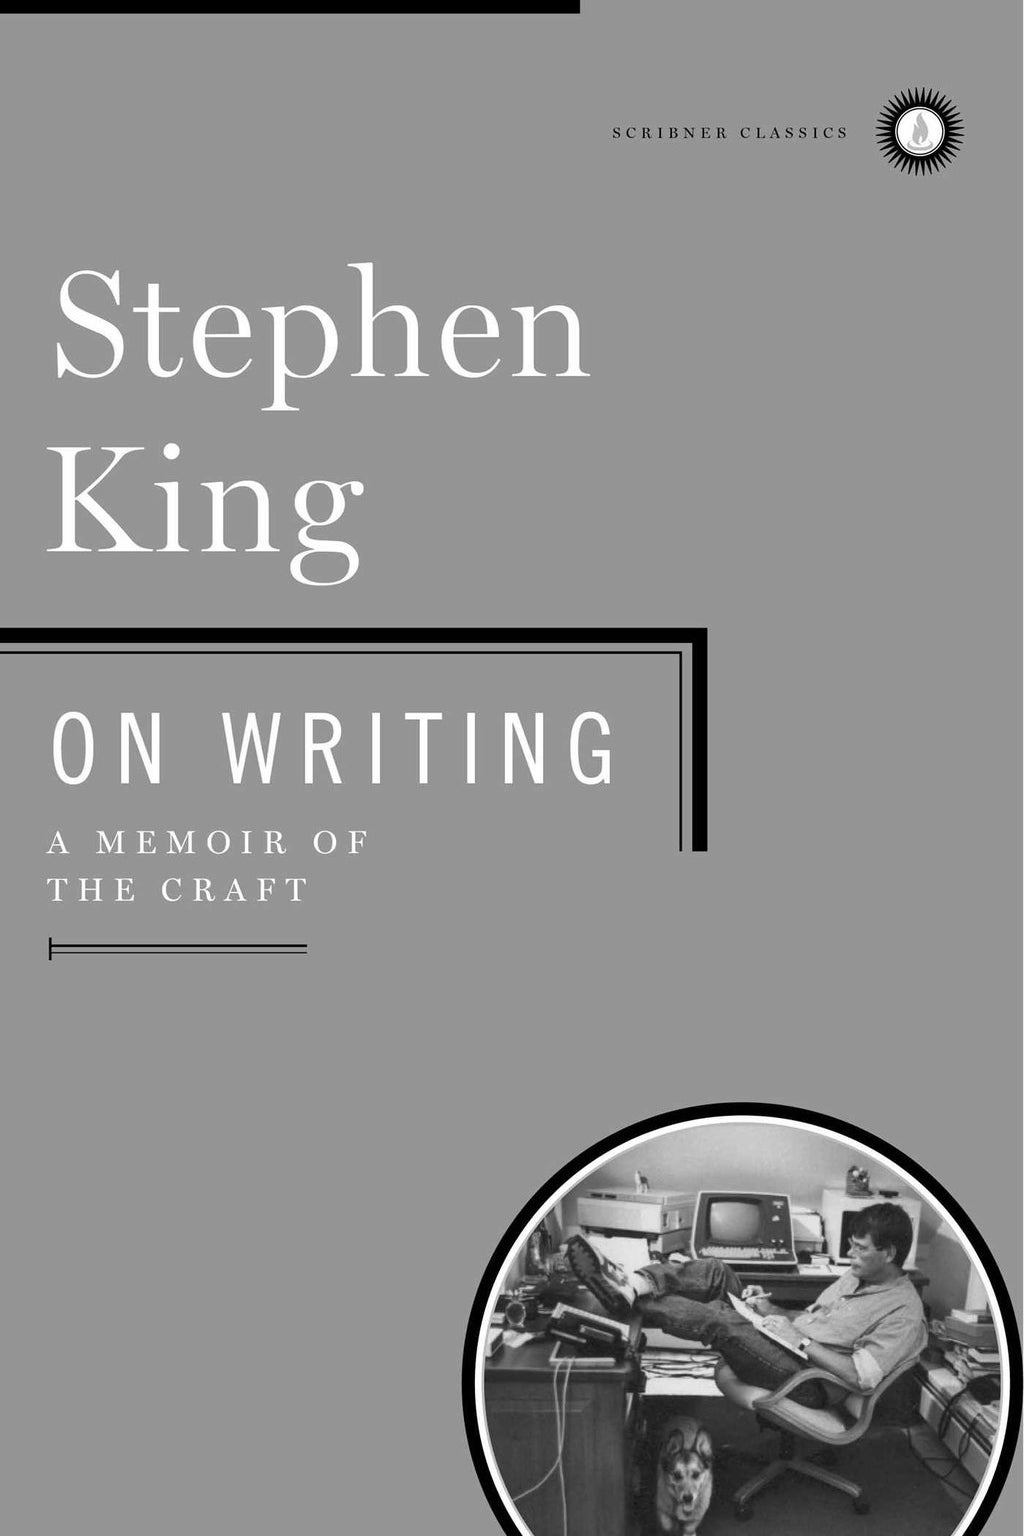 stephen king essay on writing Writers on writing is a short series of posts devoted to reviewing and discussing books on the craft that were written by sff(&h) authors, from john scalzi to nancy kress one of the most popular books on the craft is undoubtedly stephen king's memoir/writer's book, on writing.